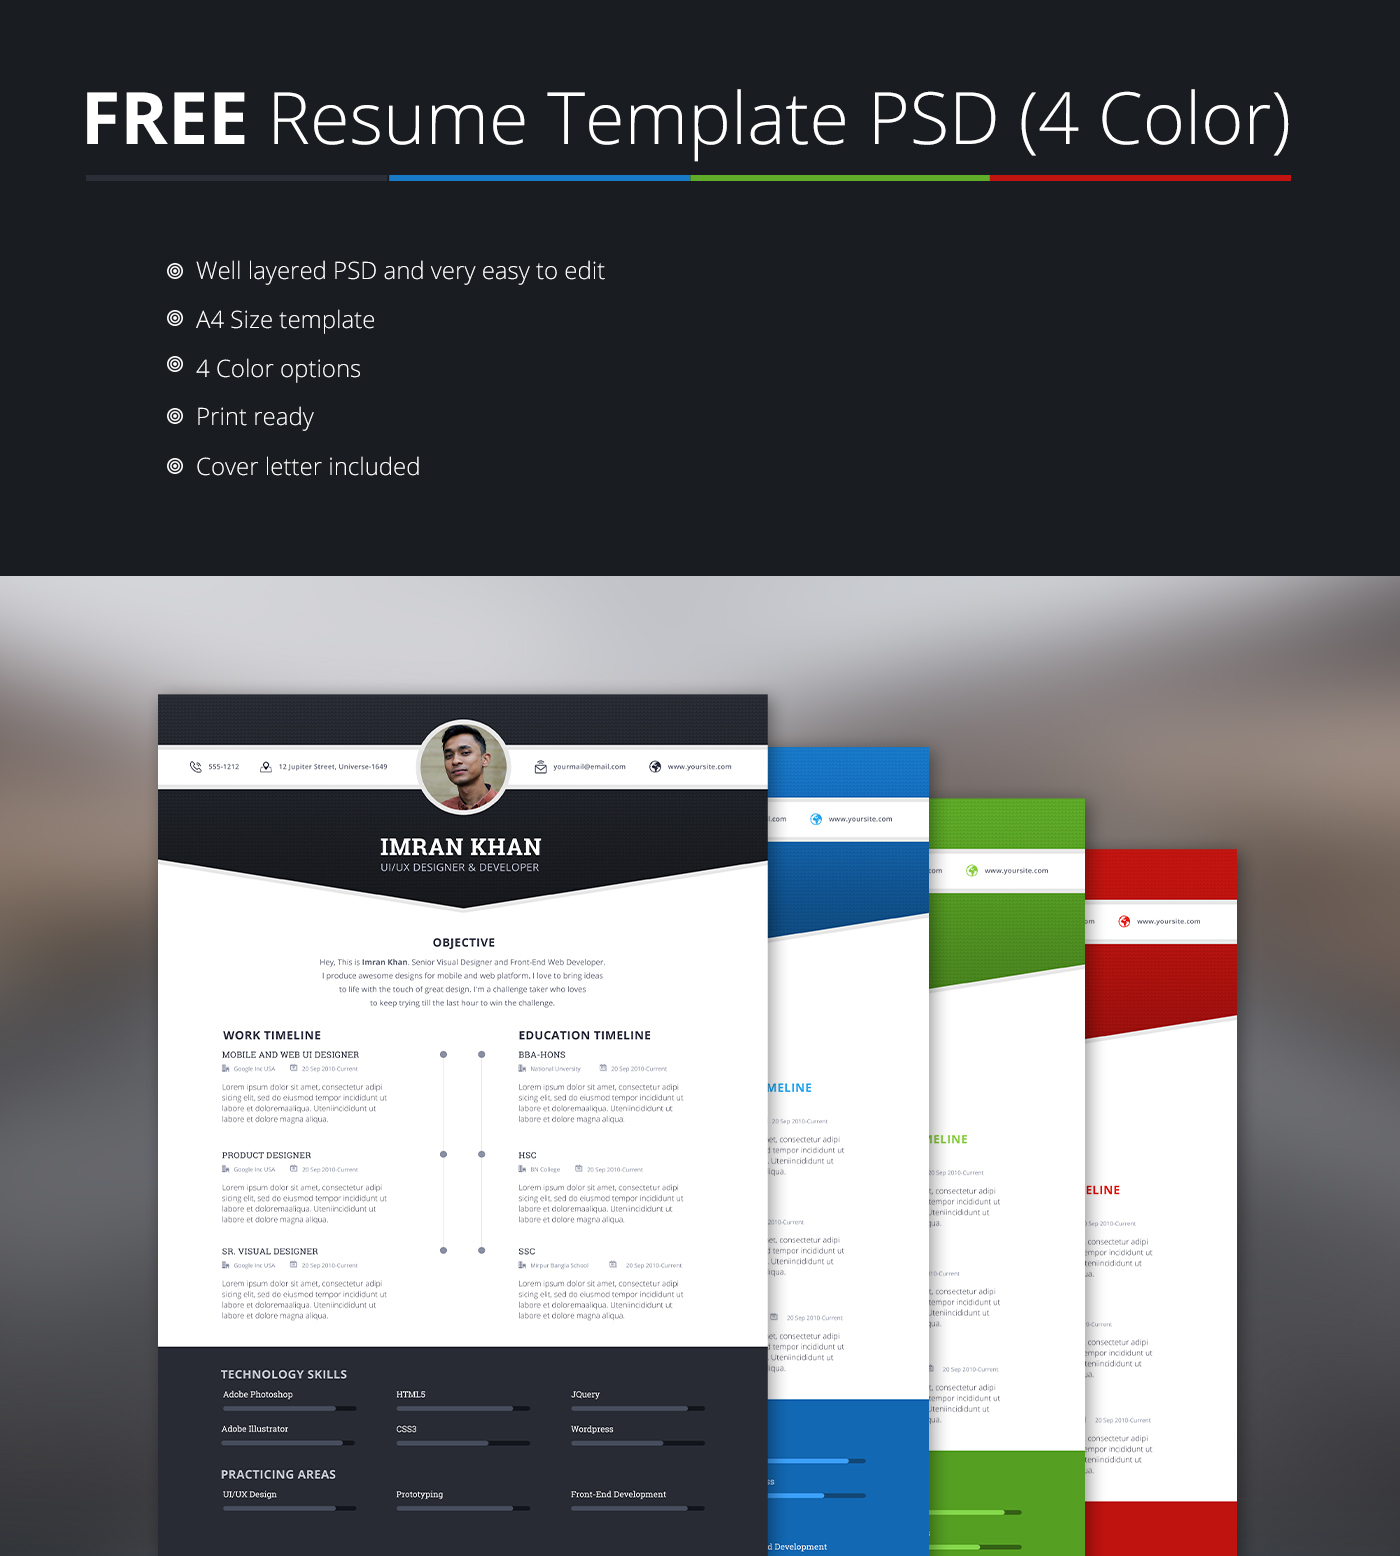 Resume Psd Template Free Psd Resume Template In Four Colors